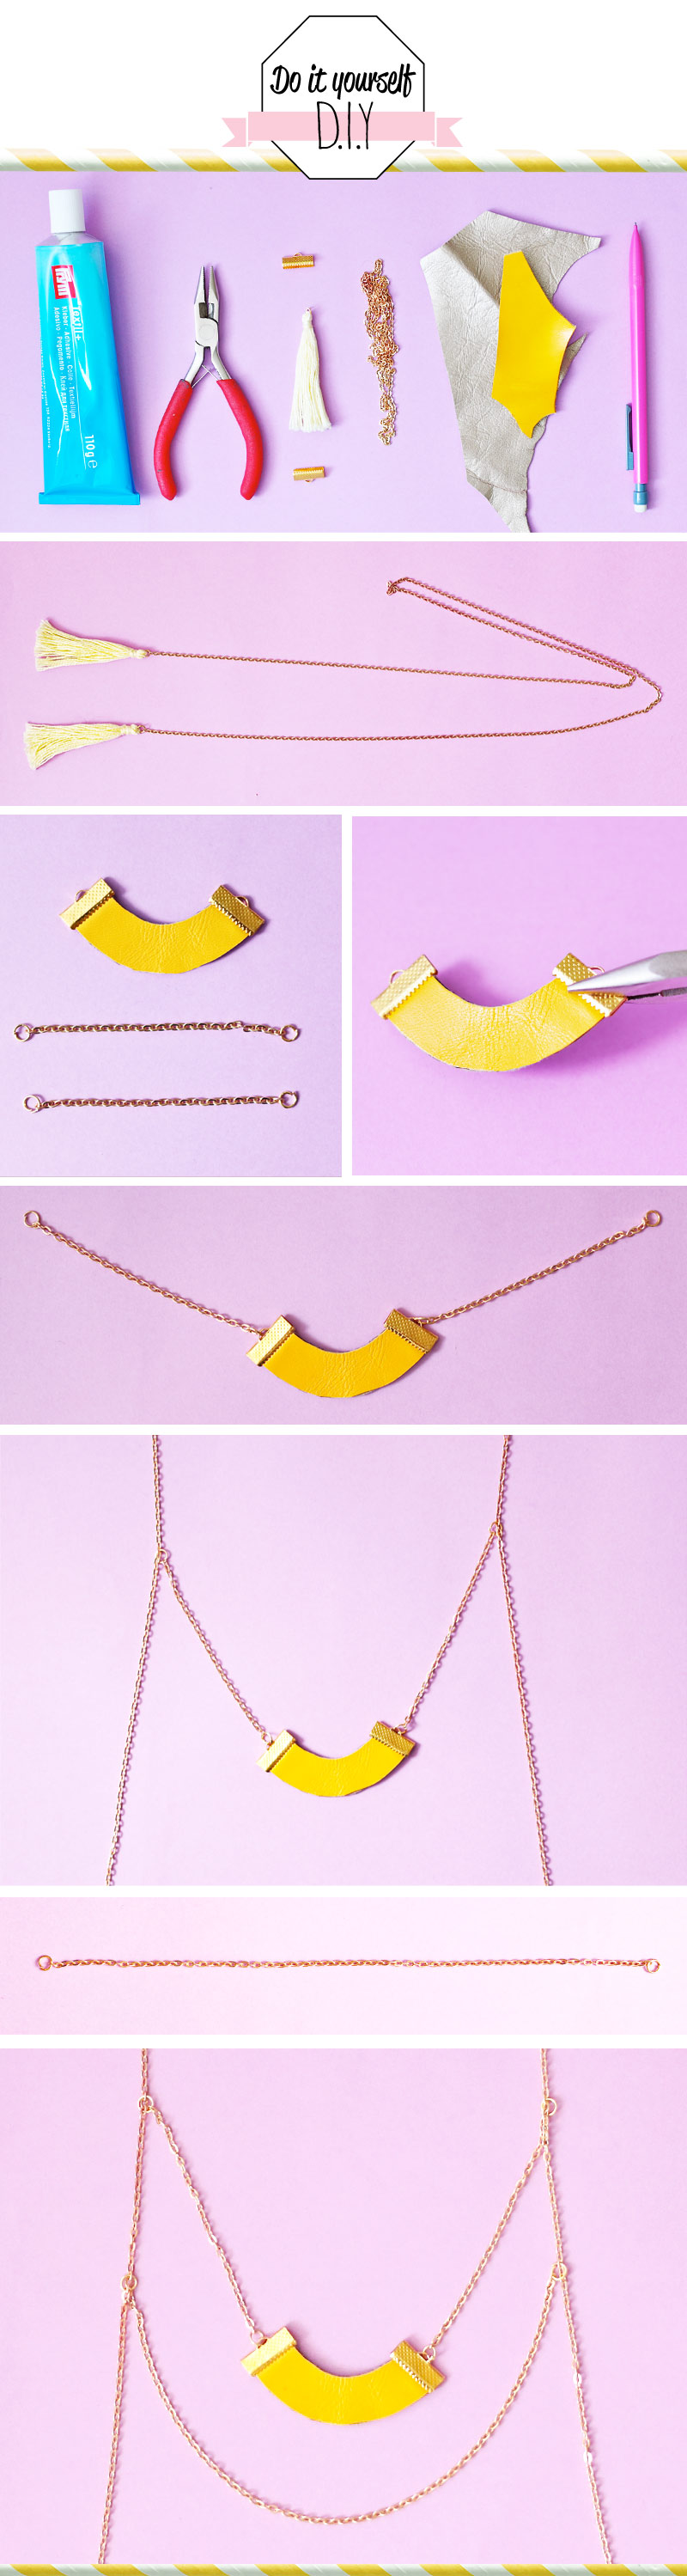 diy-collier-jaune